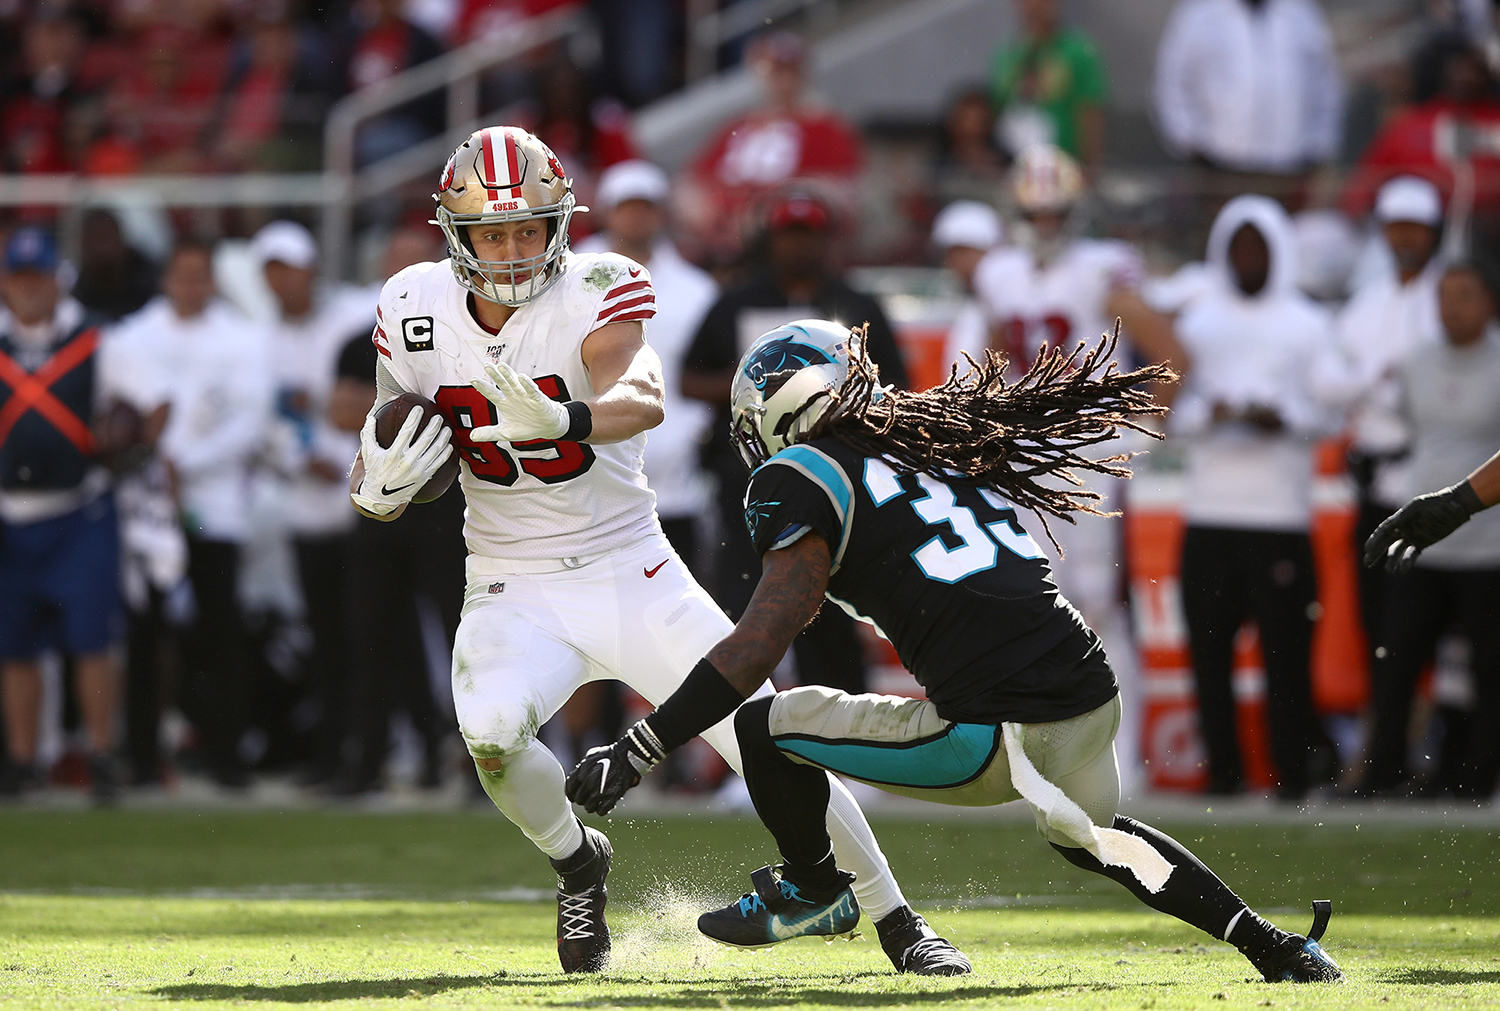 Tre Boston of the Carolina Panthers tackles George Kittle of the San Francisco 49ers on Oct. 27 at Levi's Stadium in Santa Clara, California. (Ezra Shaw/Getty Images/TNS)